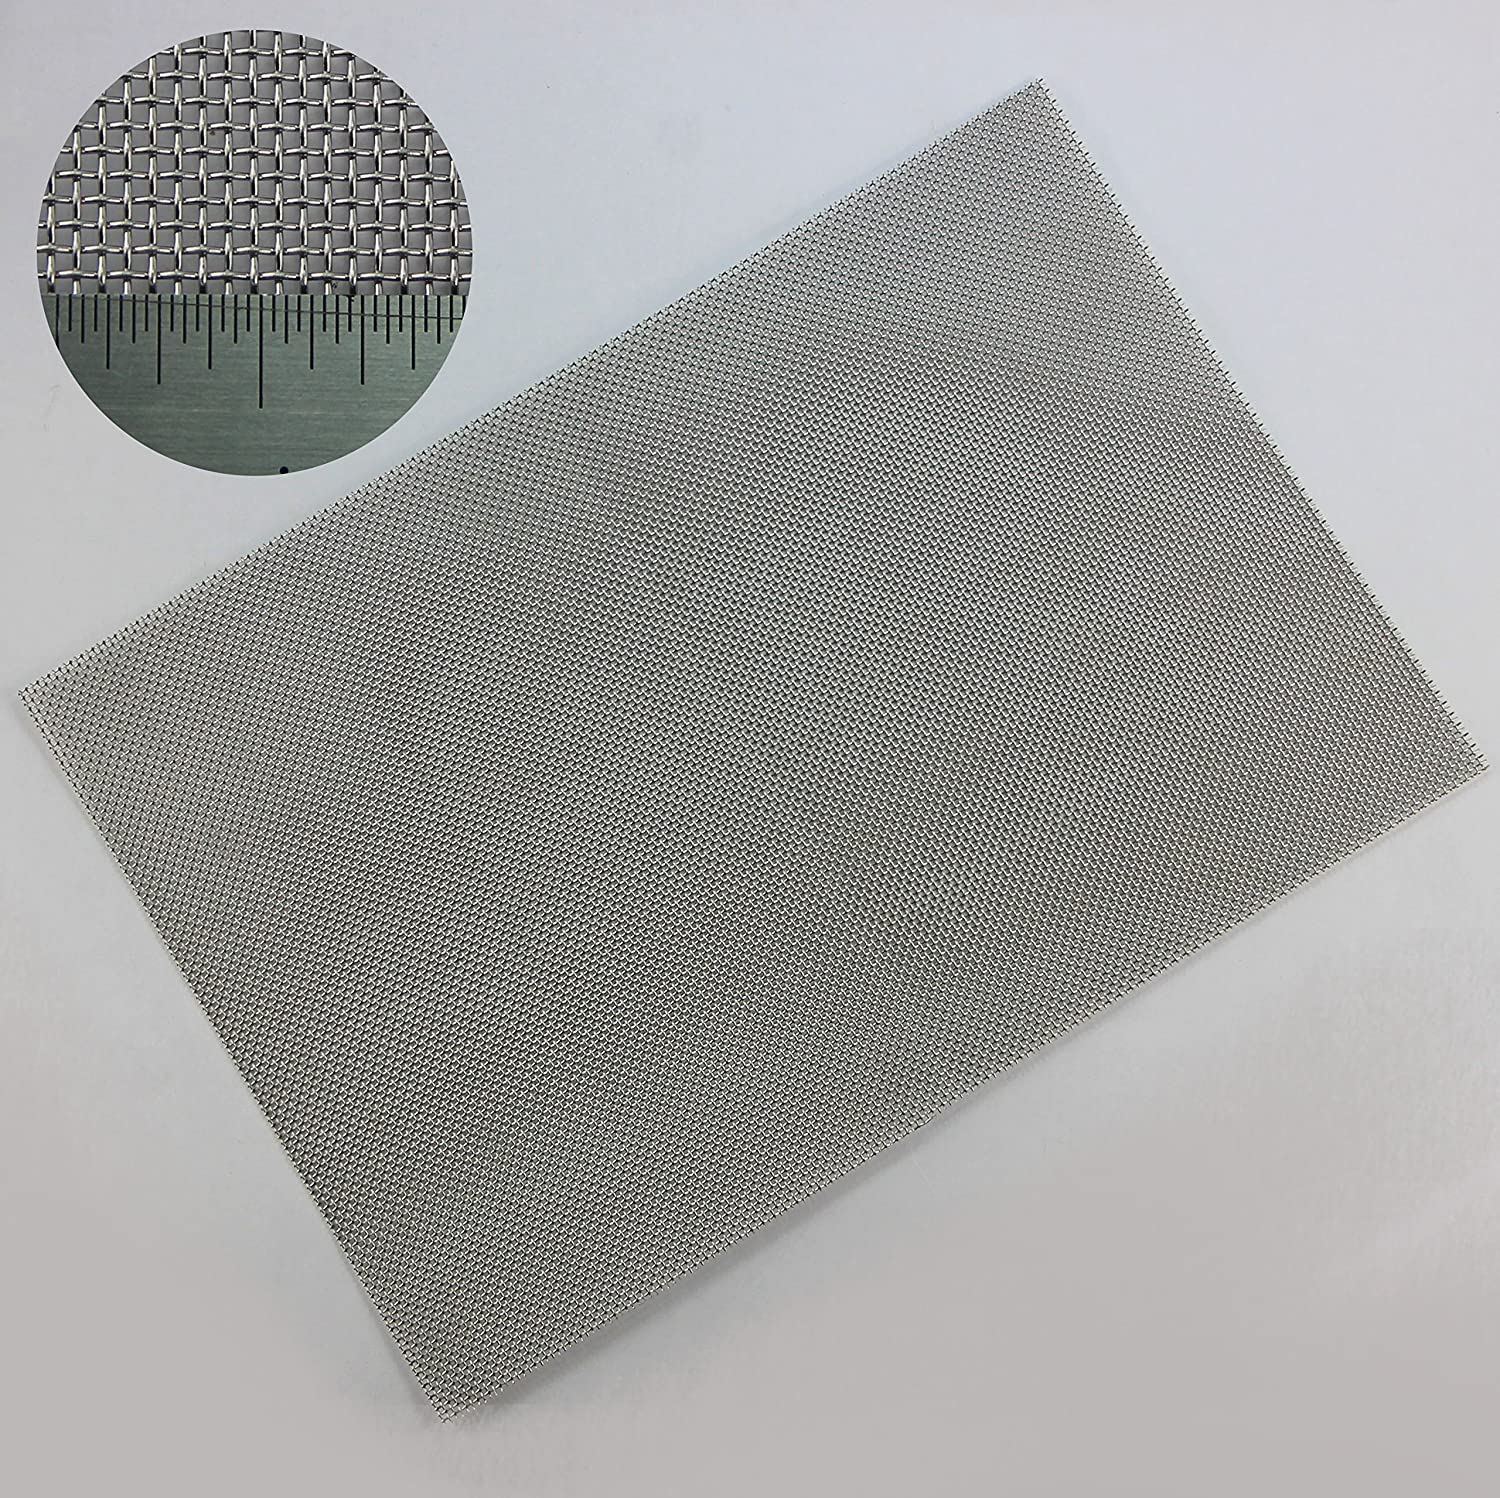 The Mesh Company's Rodent Mesh - 1mm Hole - Stainless Steel Woven Mesh - A4 Sheet 210 x 300mm - Great For Airbricks! - FAST & FREE SHIPPING